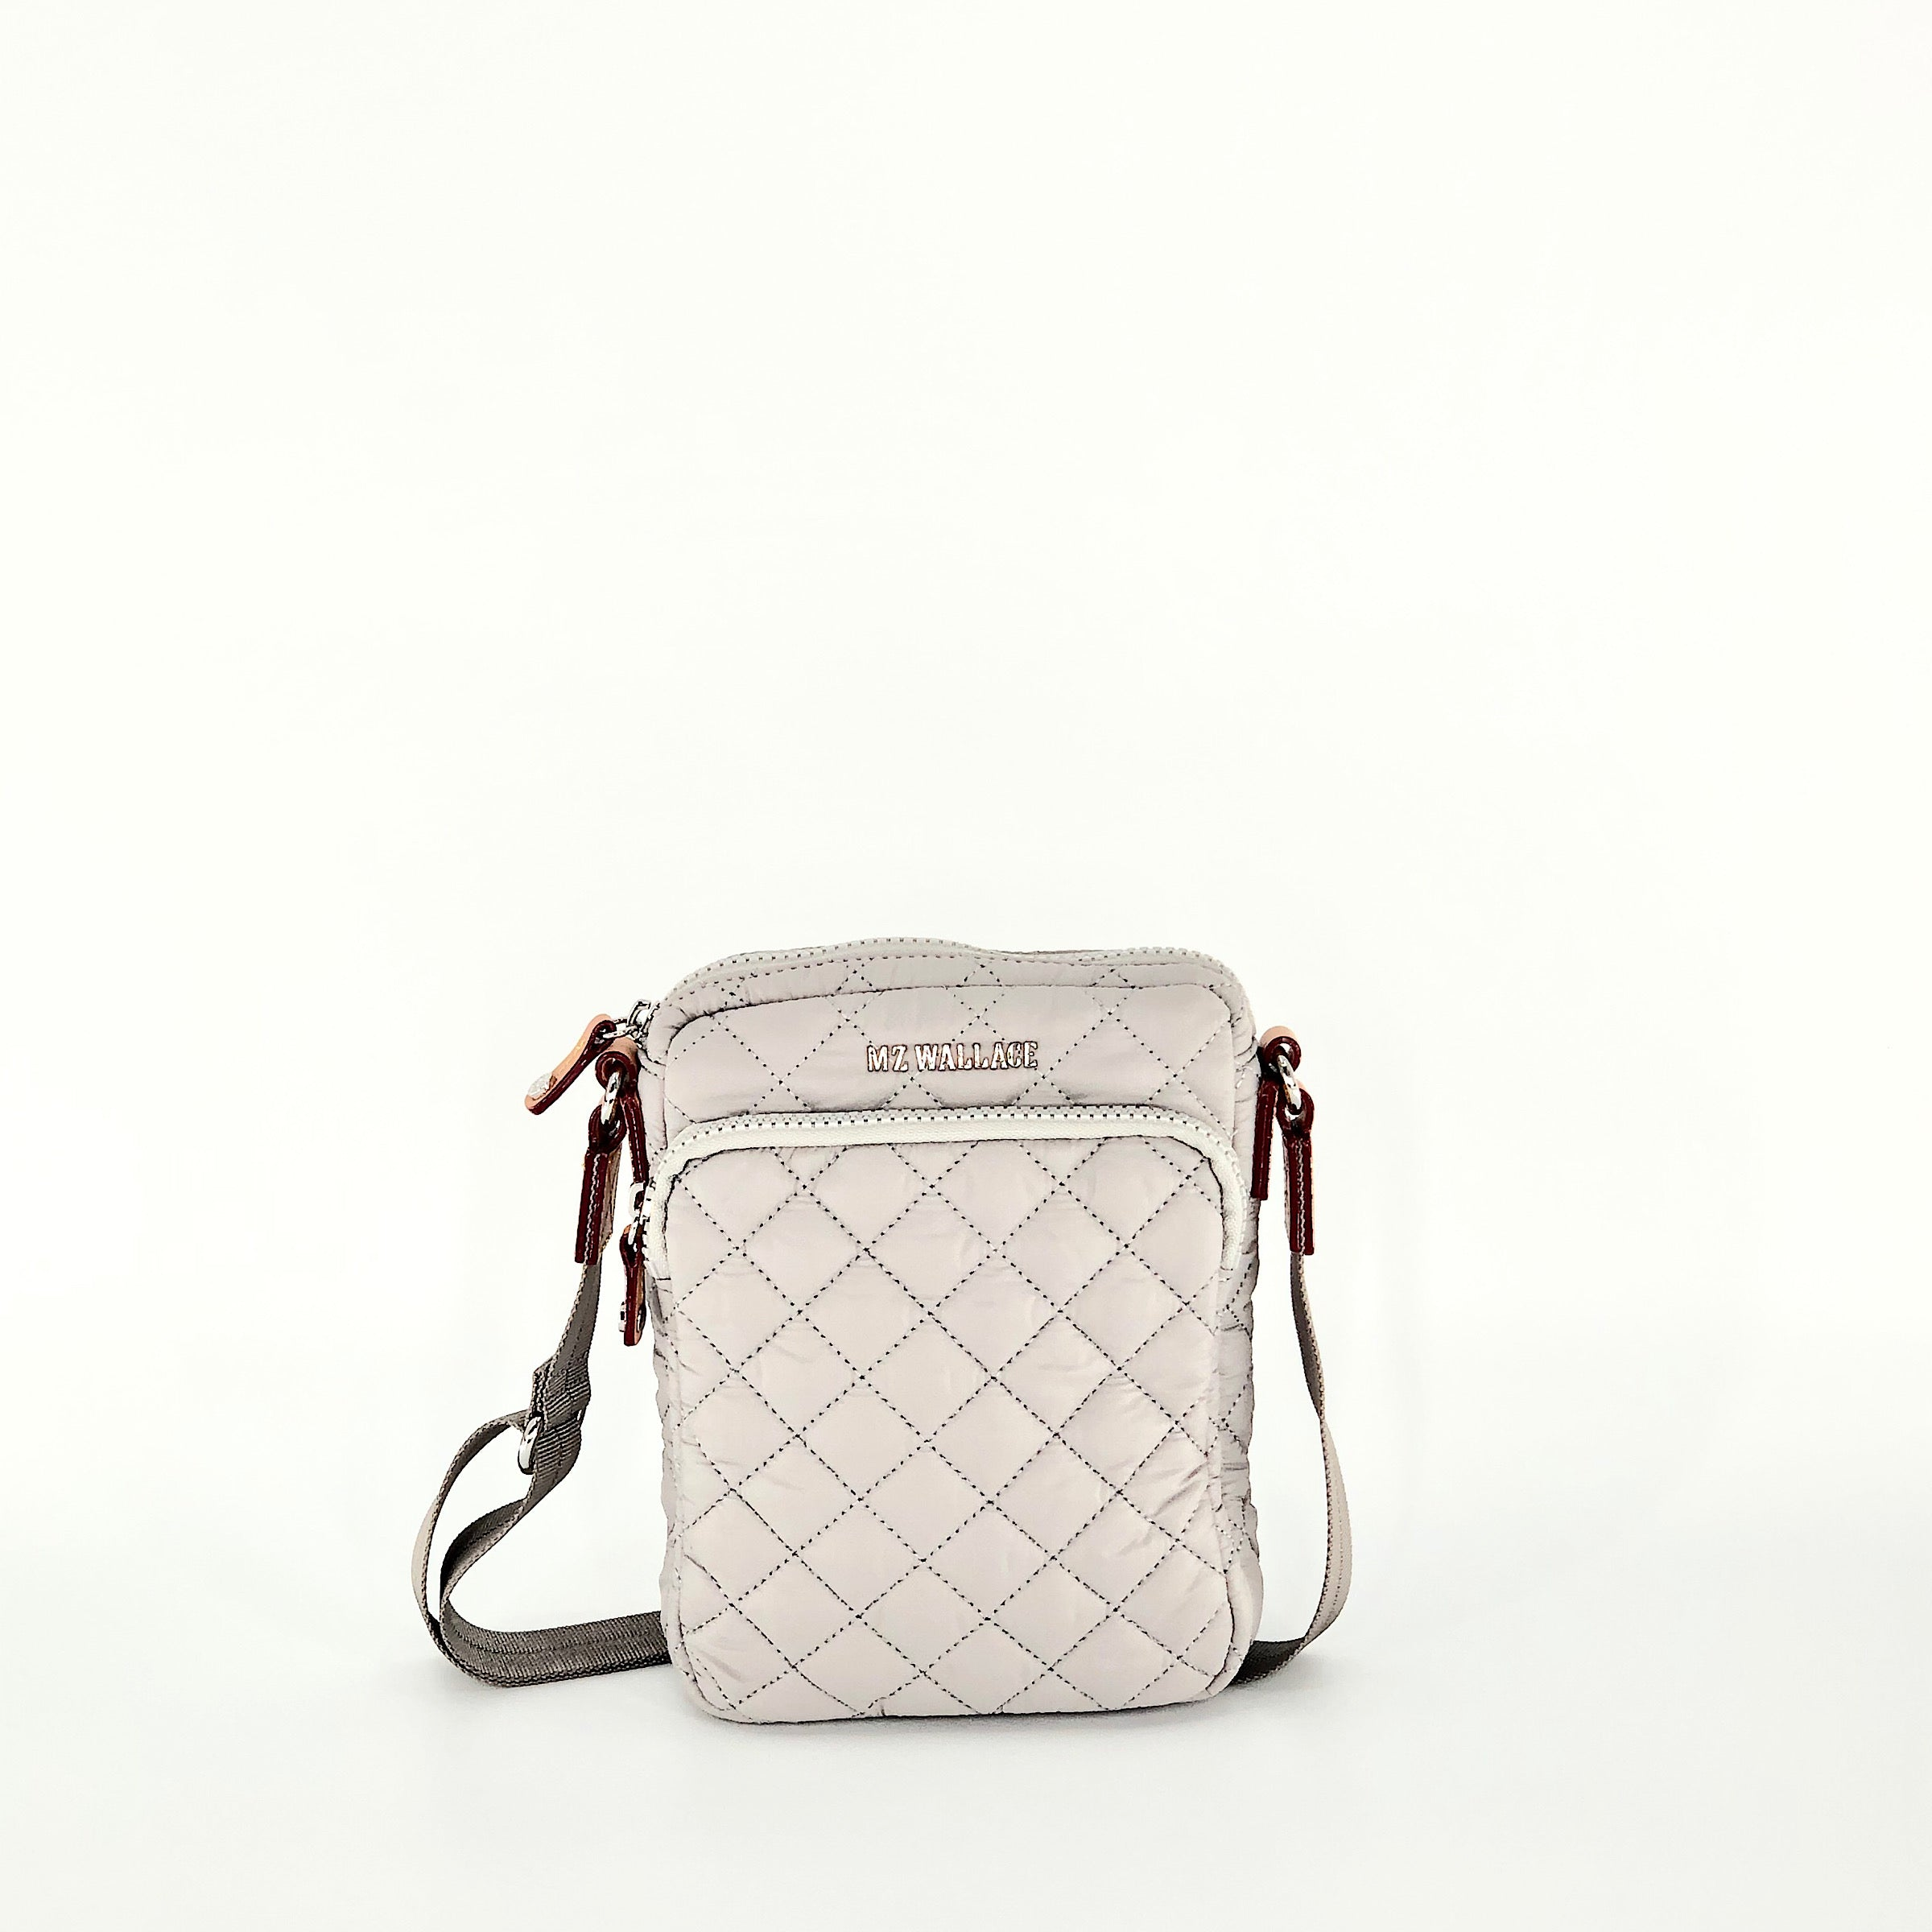 The Metro Crossbody - Fog by MZ Wallace. The Metro Crossbody is an update allowing for more room to truly be hands-free. Adjustable strap and 2 external pocket allows for all your essentials and easy access to be active you. Zip top closure.